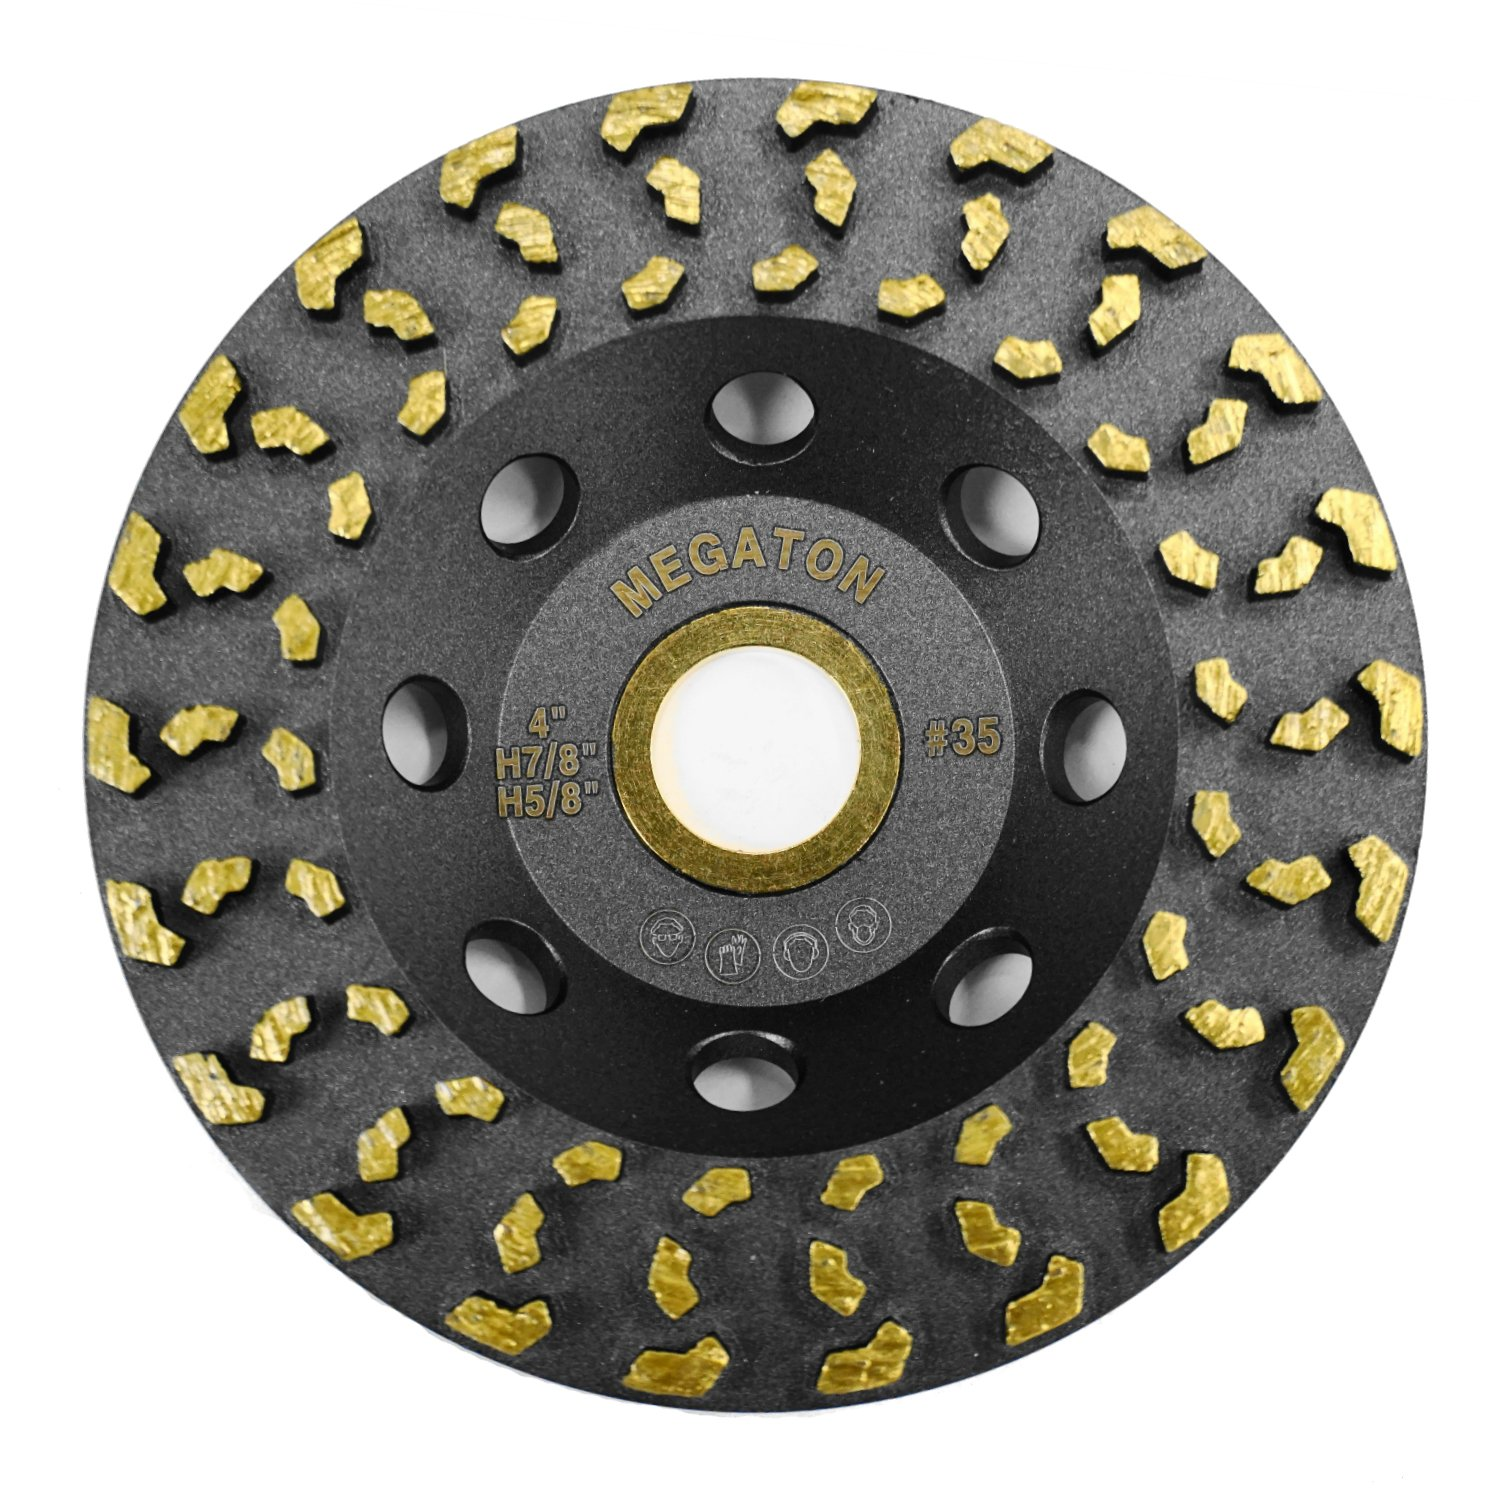 Megatron 4'' Diamond Cup Grinding Removing Disc Wheel for Concrete, Paint, Epoxy, Glue and Mastic with CDB Newest Technology (Megatron 4'') by Trenion